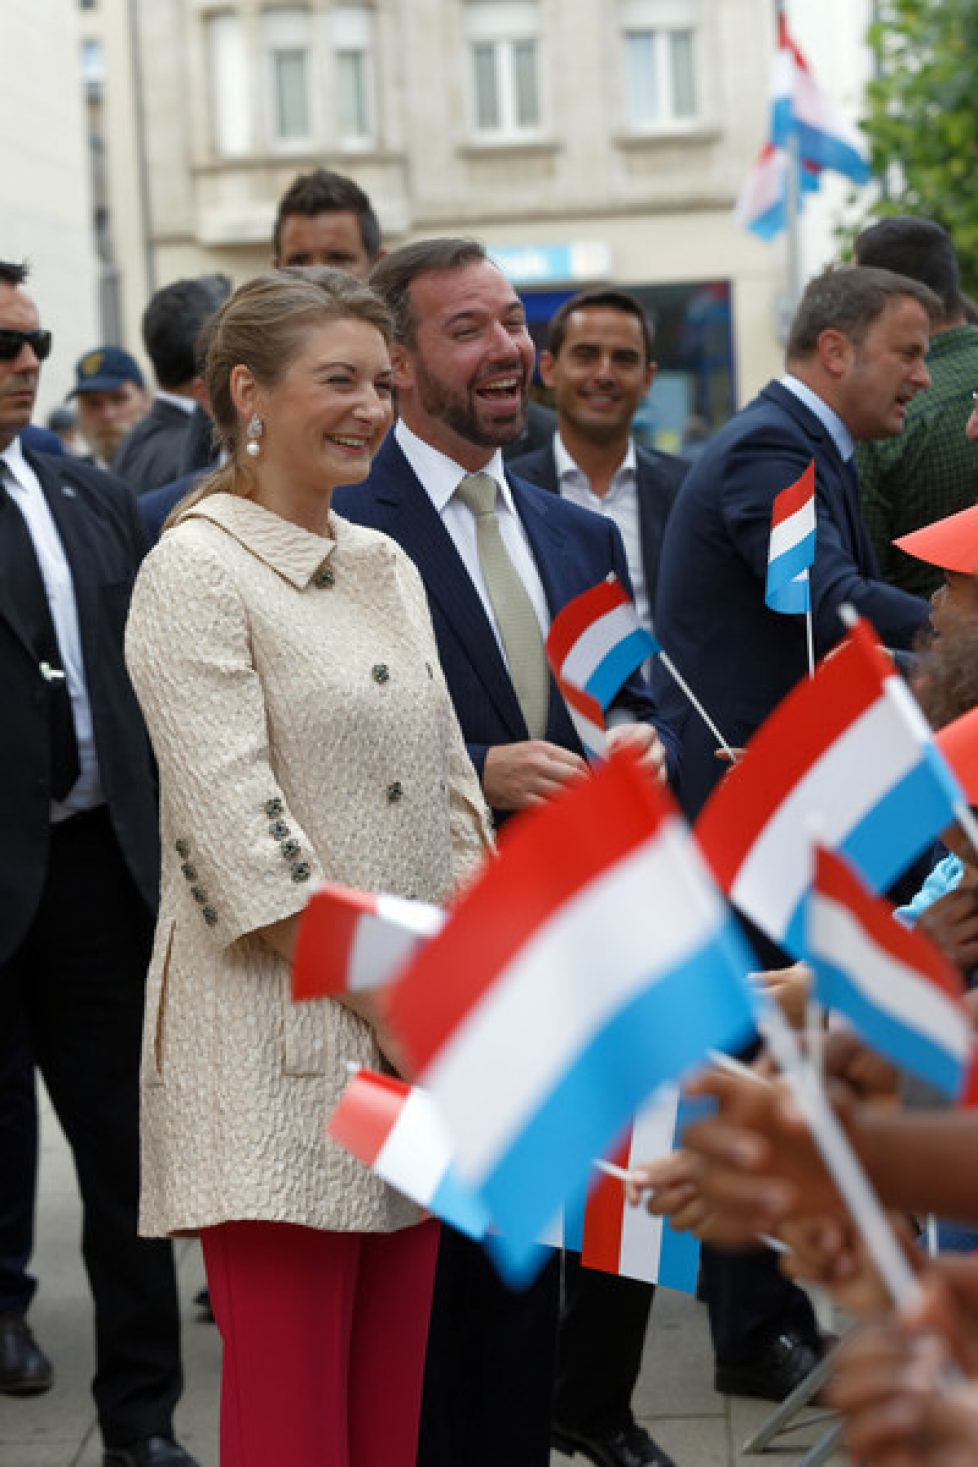 Luxembourg+Celebrates+National+Day+Day+One+b0hpVIX873Ol